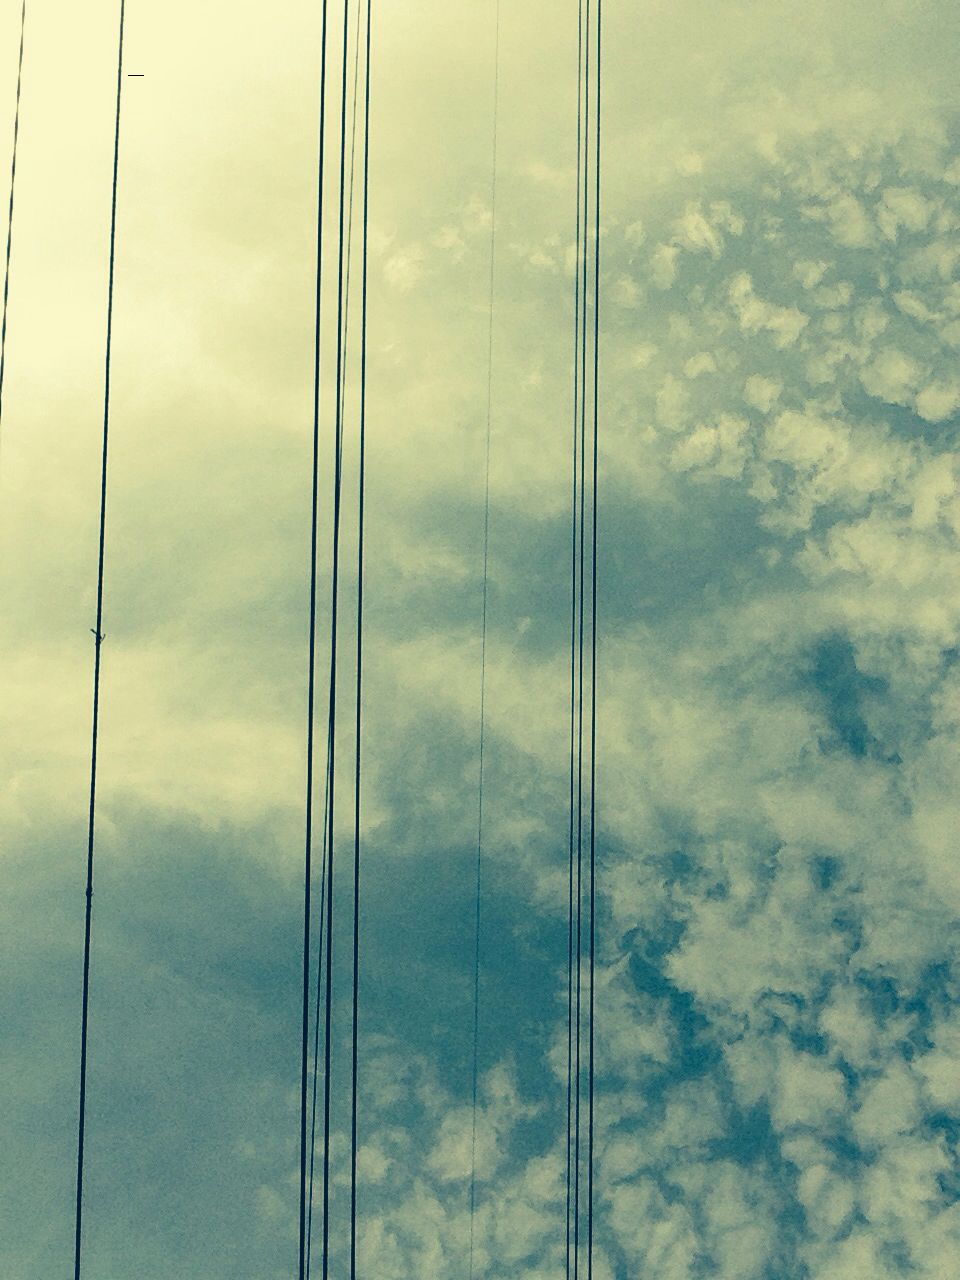 Sky and telephone wires. Filter on.